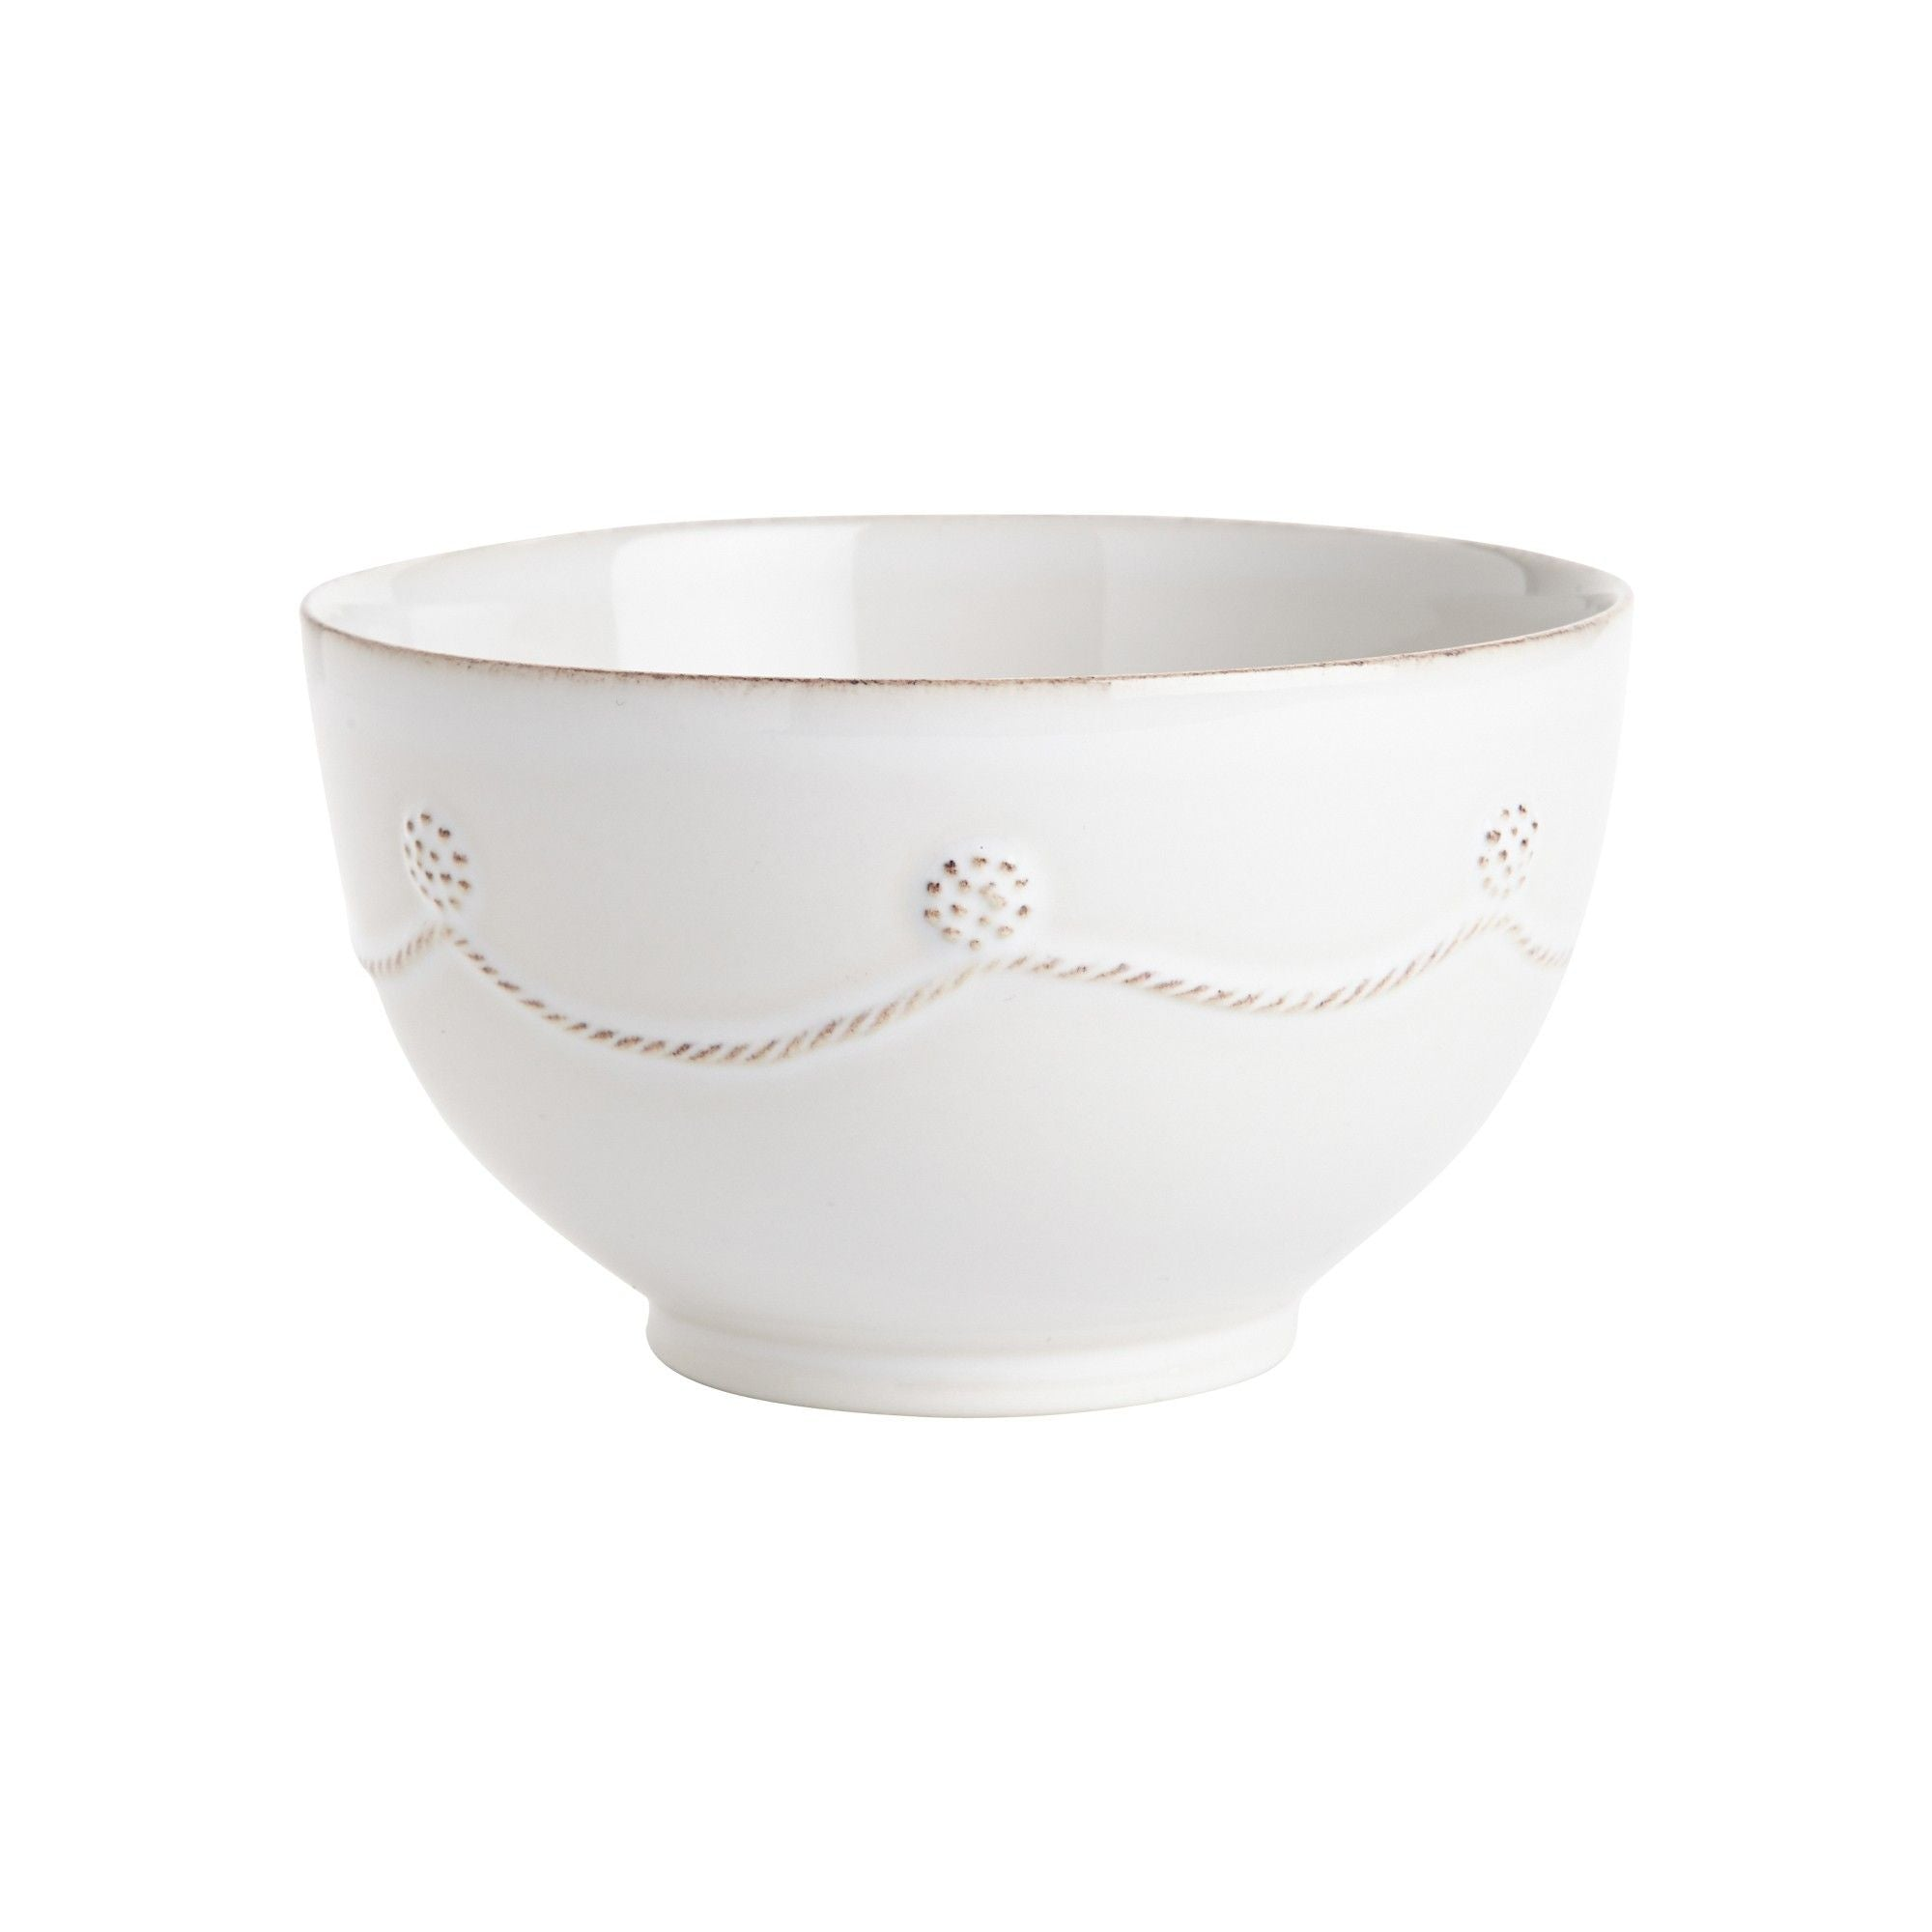 Berry & Thread Whitewash Cereal Bowl